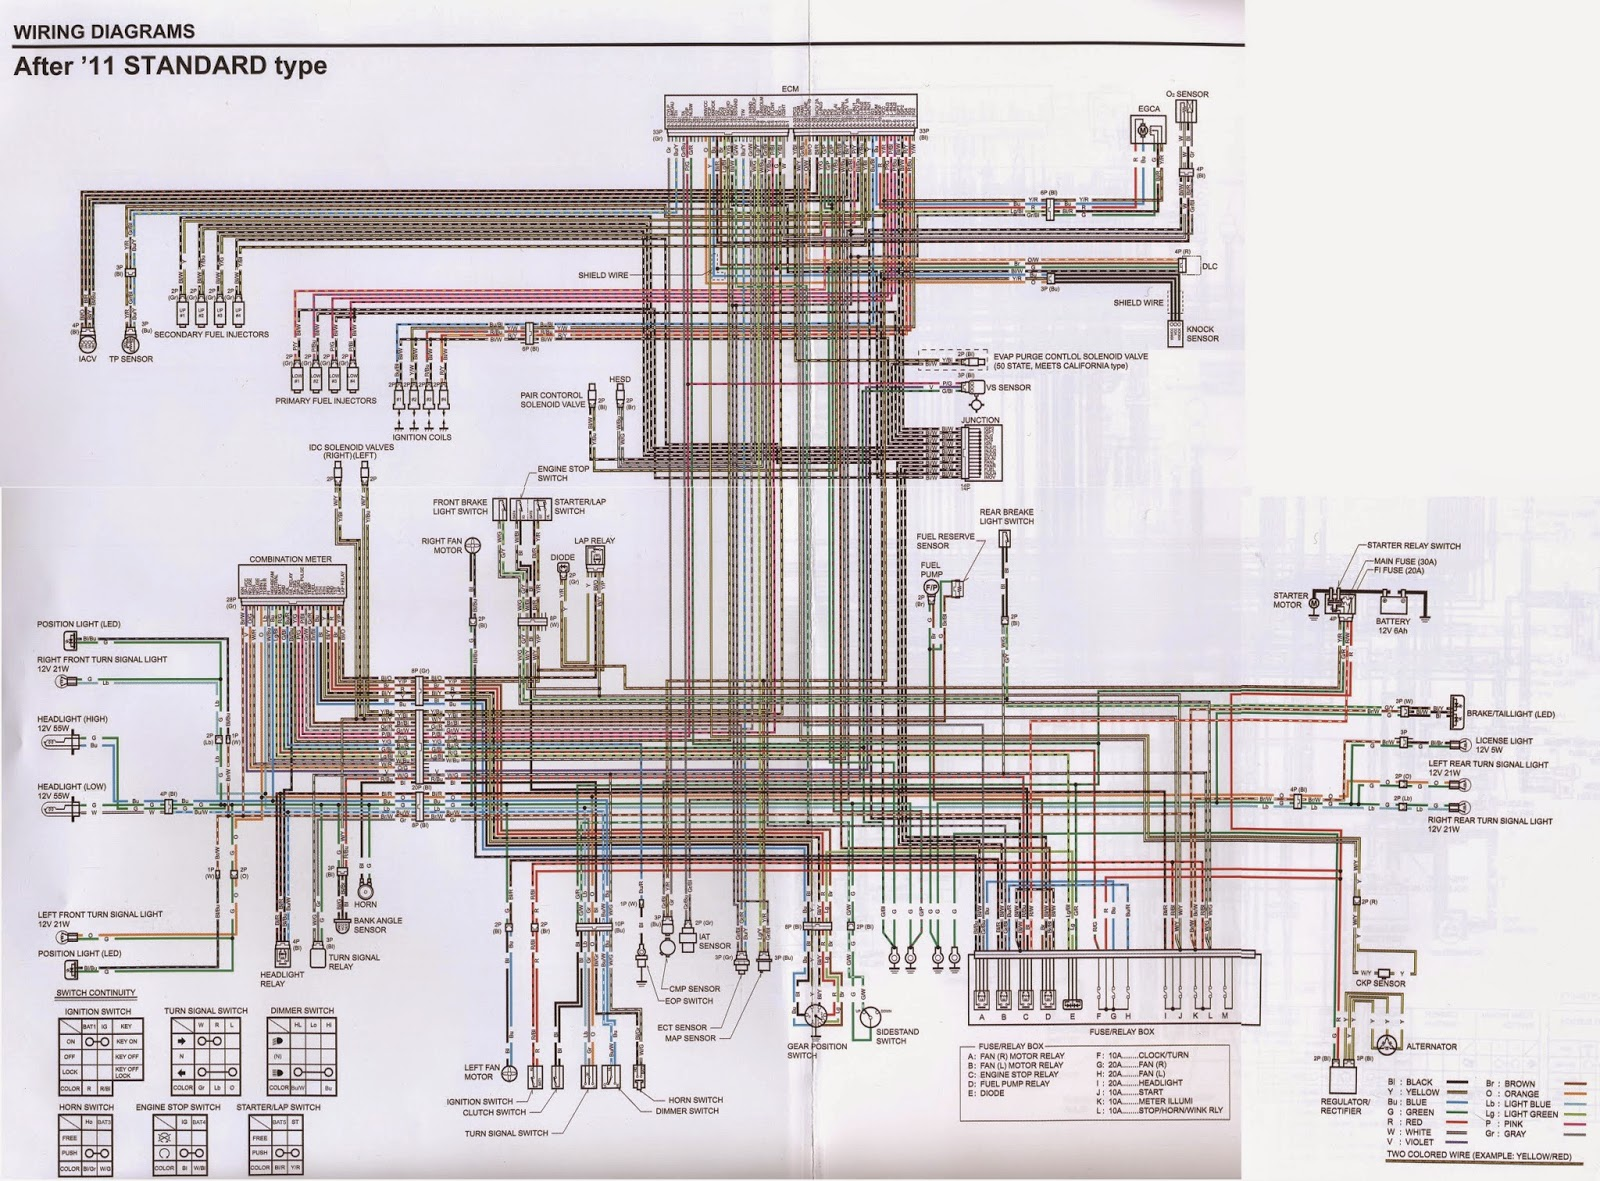 Cbr1000rr Wiring Diagram Just Another Data 2008 Honda Xr650l Knobby Mnr Vortx Blade Build Loom Motorcycle Repair Diagrams